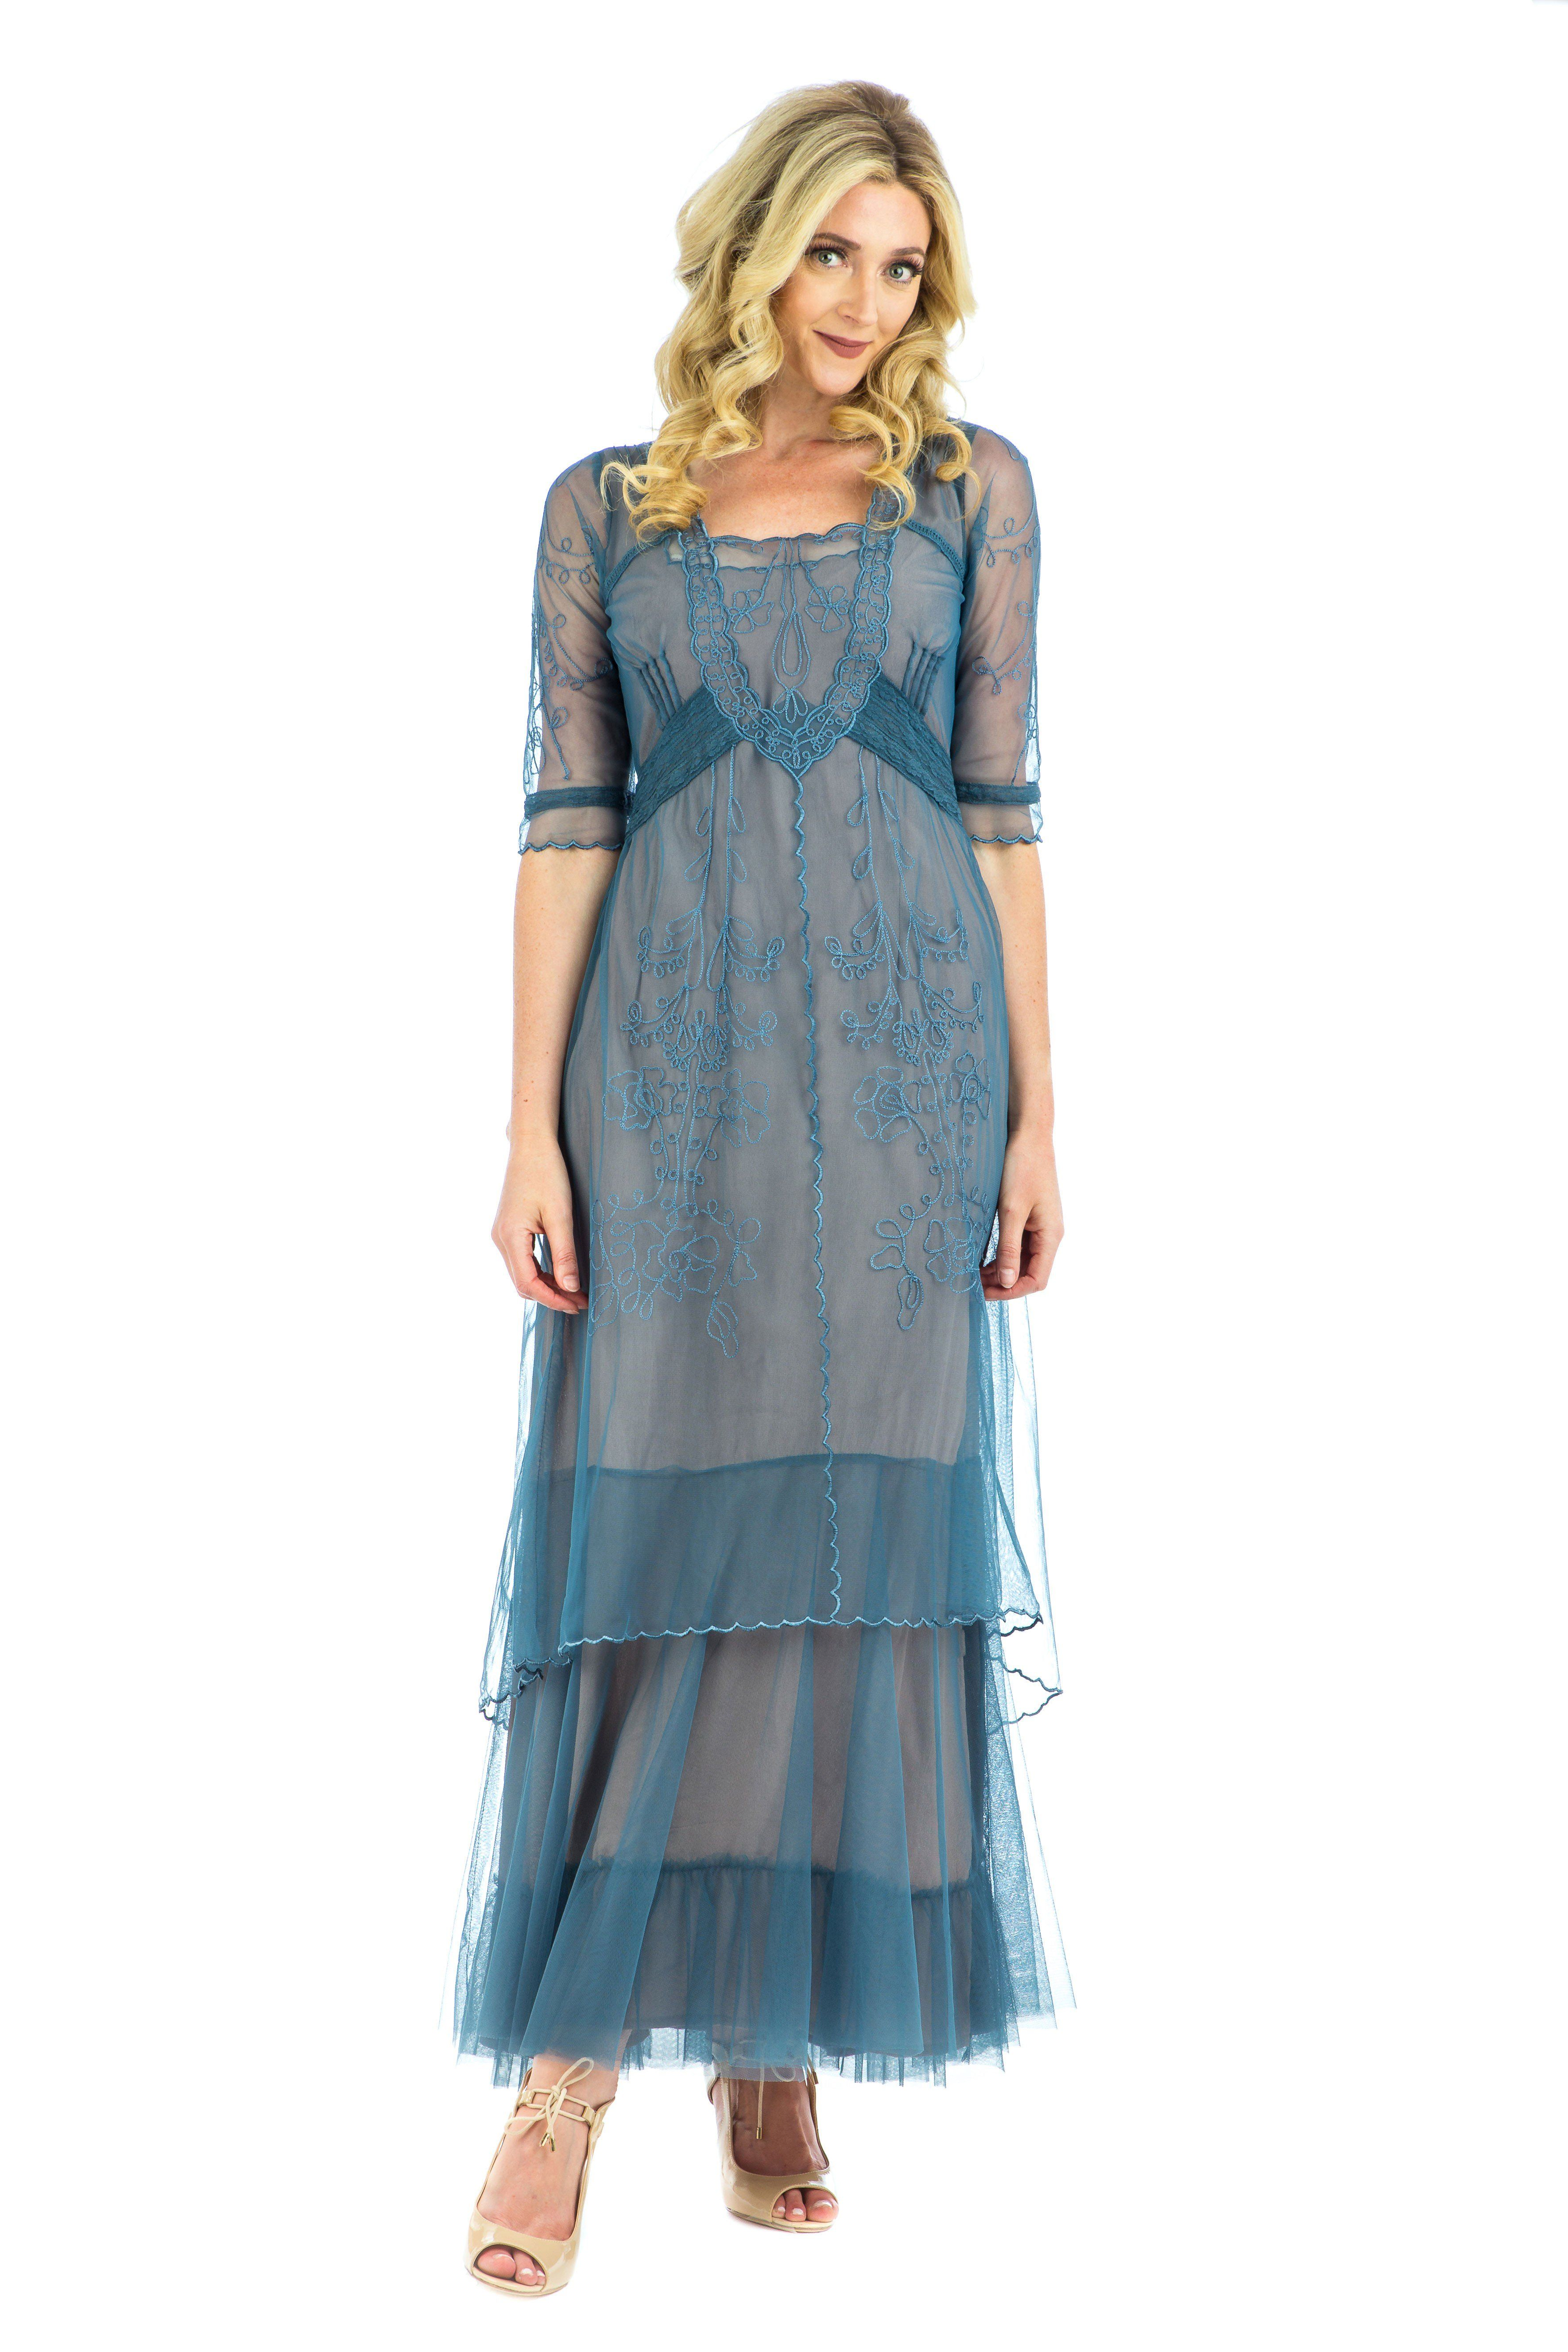 Victorian blue style dresses for sale photo